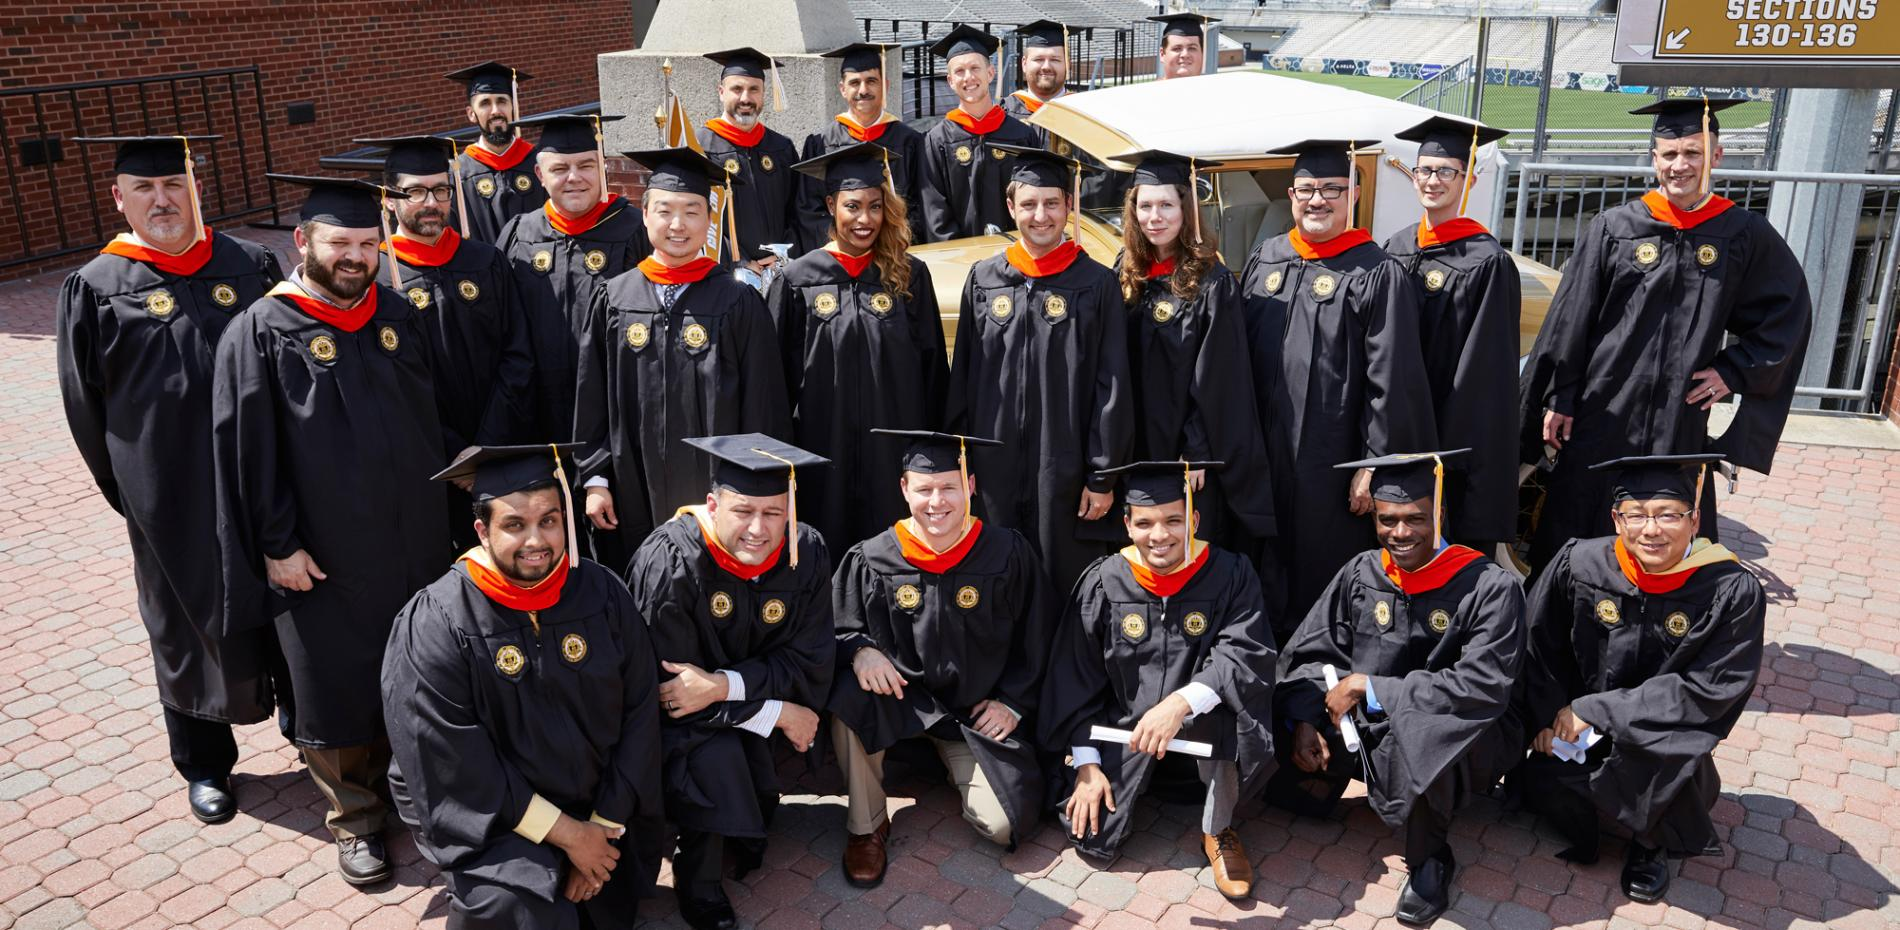 Group of Georgia Tech graduates posing in their caps and gowns